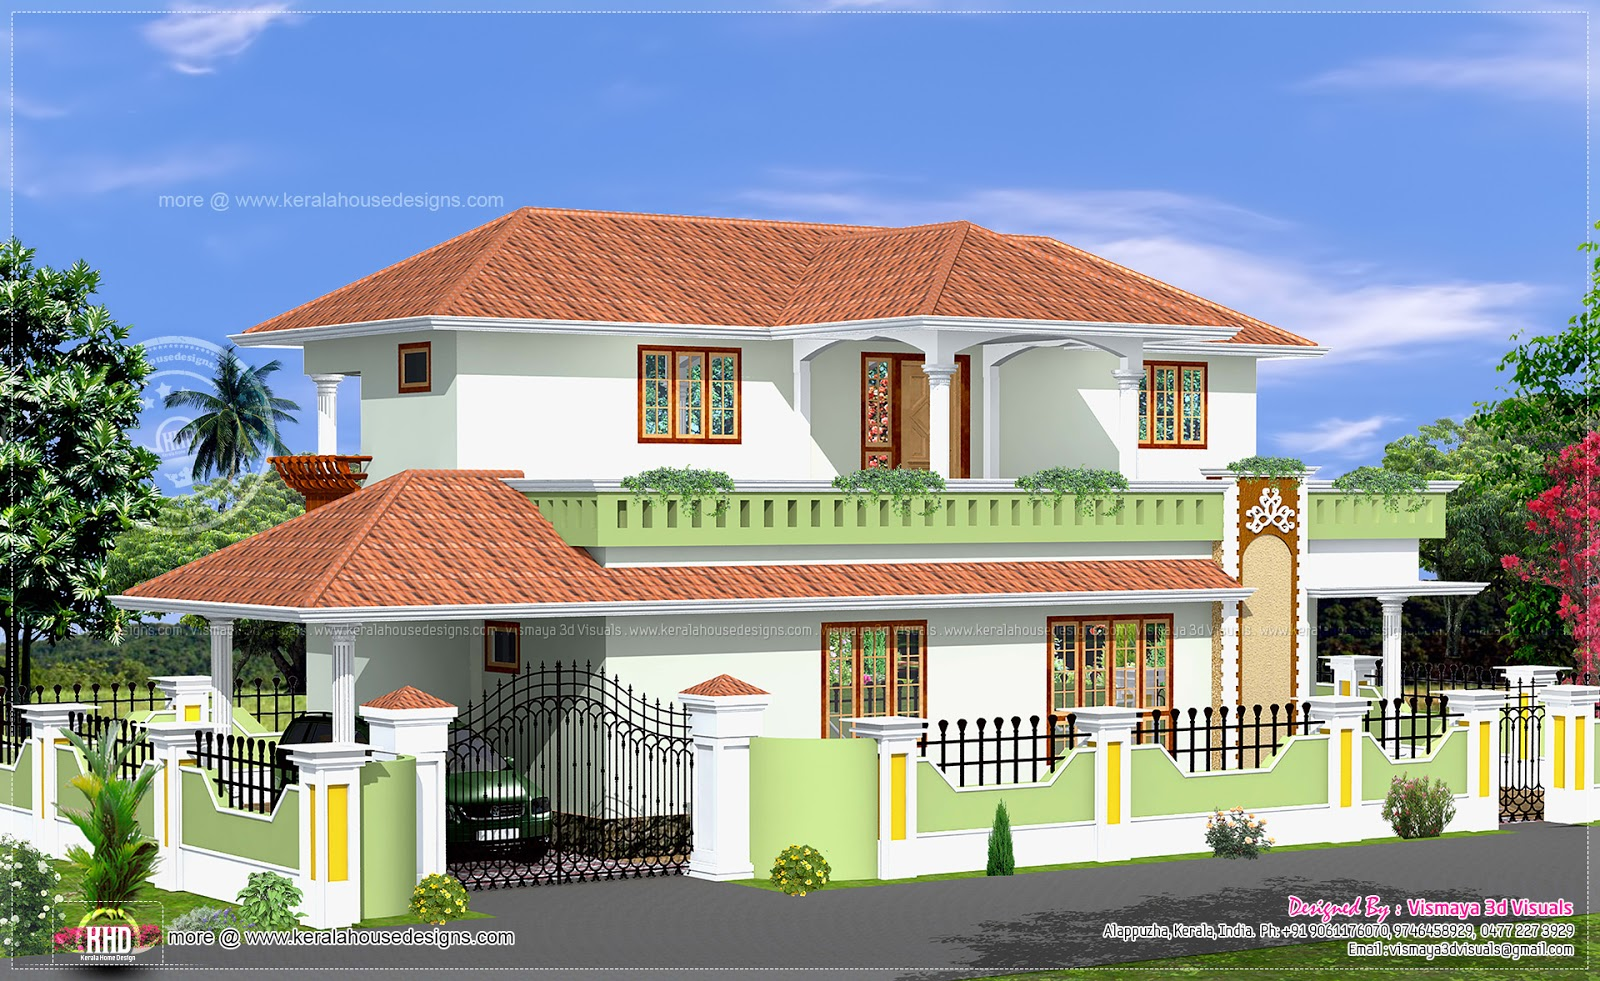 Simple house designs kerala style home design and style for Houses plans and pictures